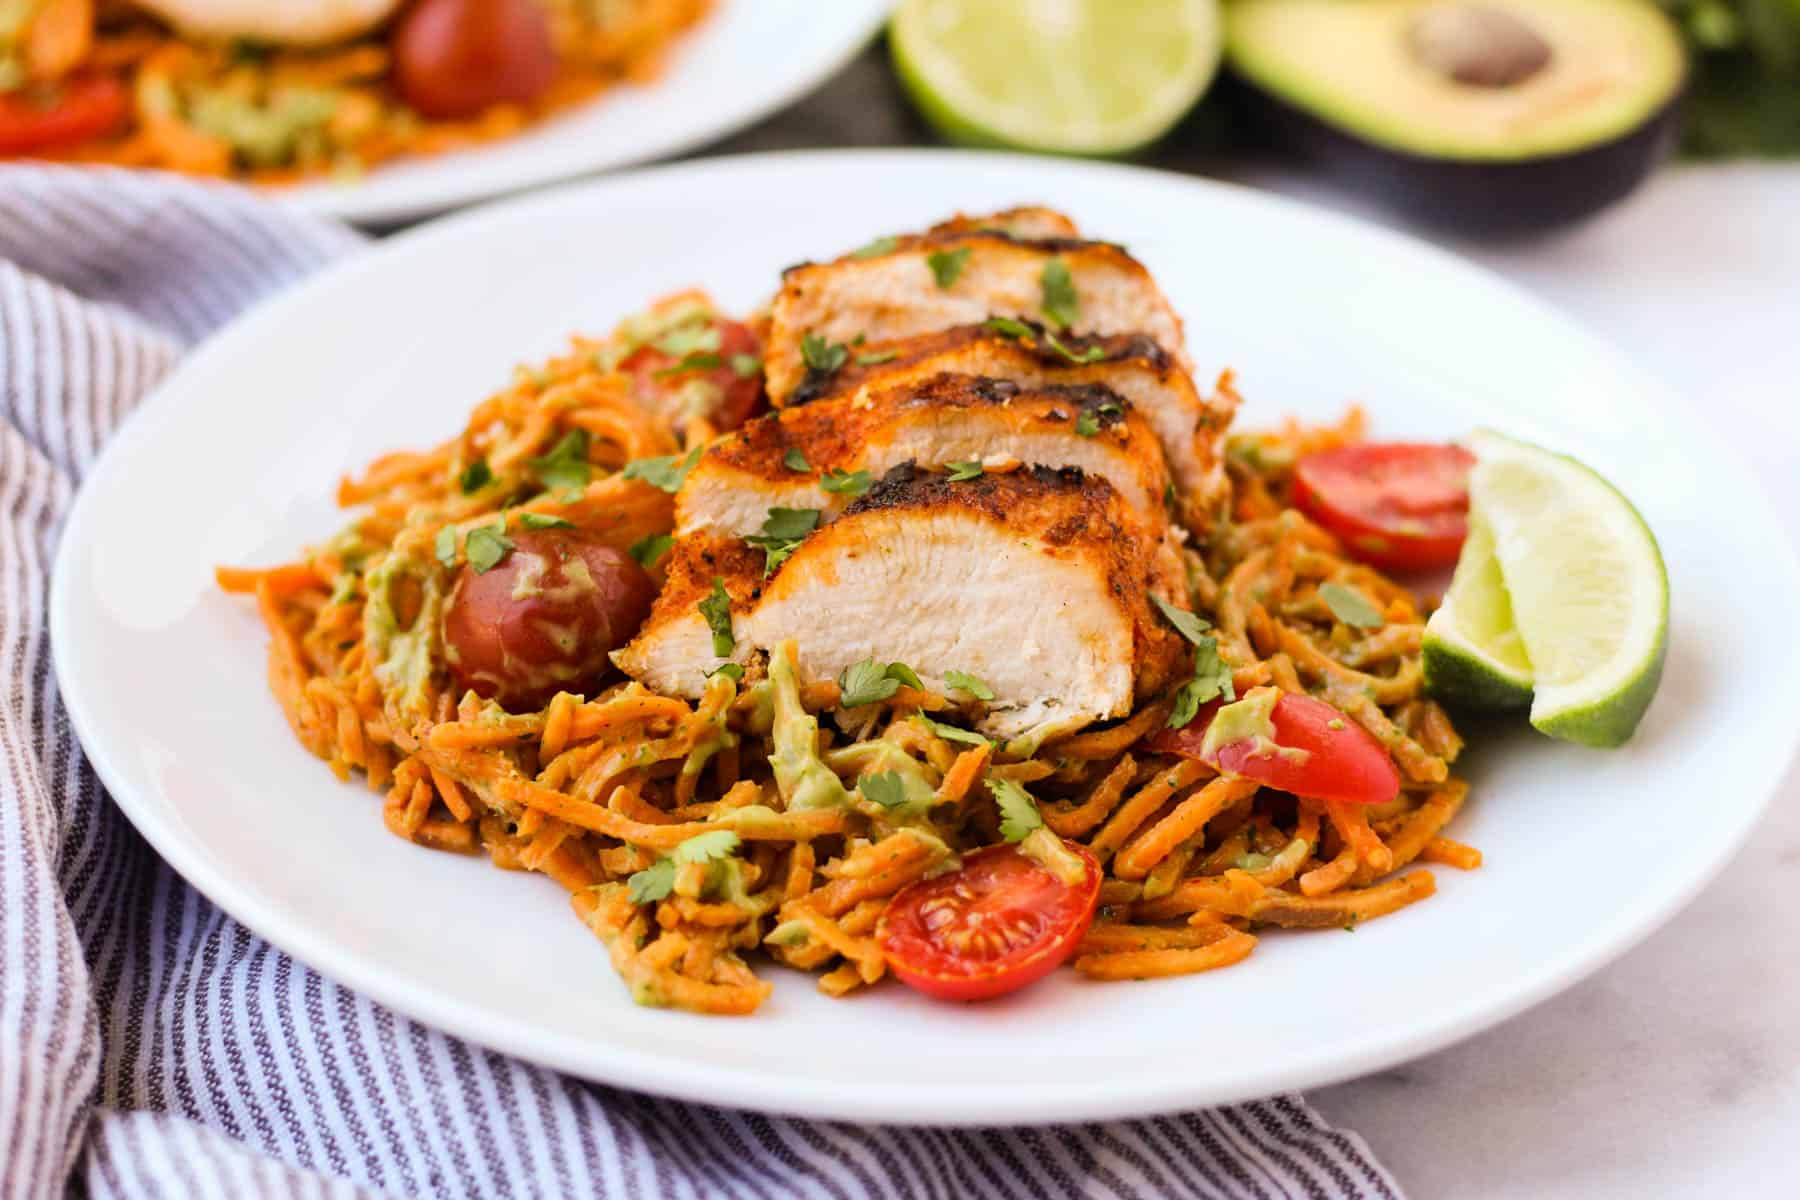 One pan & 30 minutes for this Chili Dusted Chicken & Sweet Potato Noodles with Avocado Sauce. Packed with protein, carbs, and healthy fats to make an easy gluten free, paleo, and Whole30 approved dish - Eat the Gains